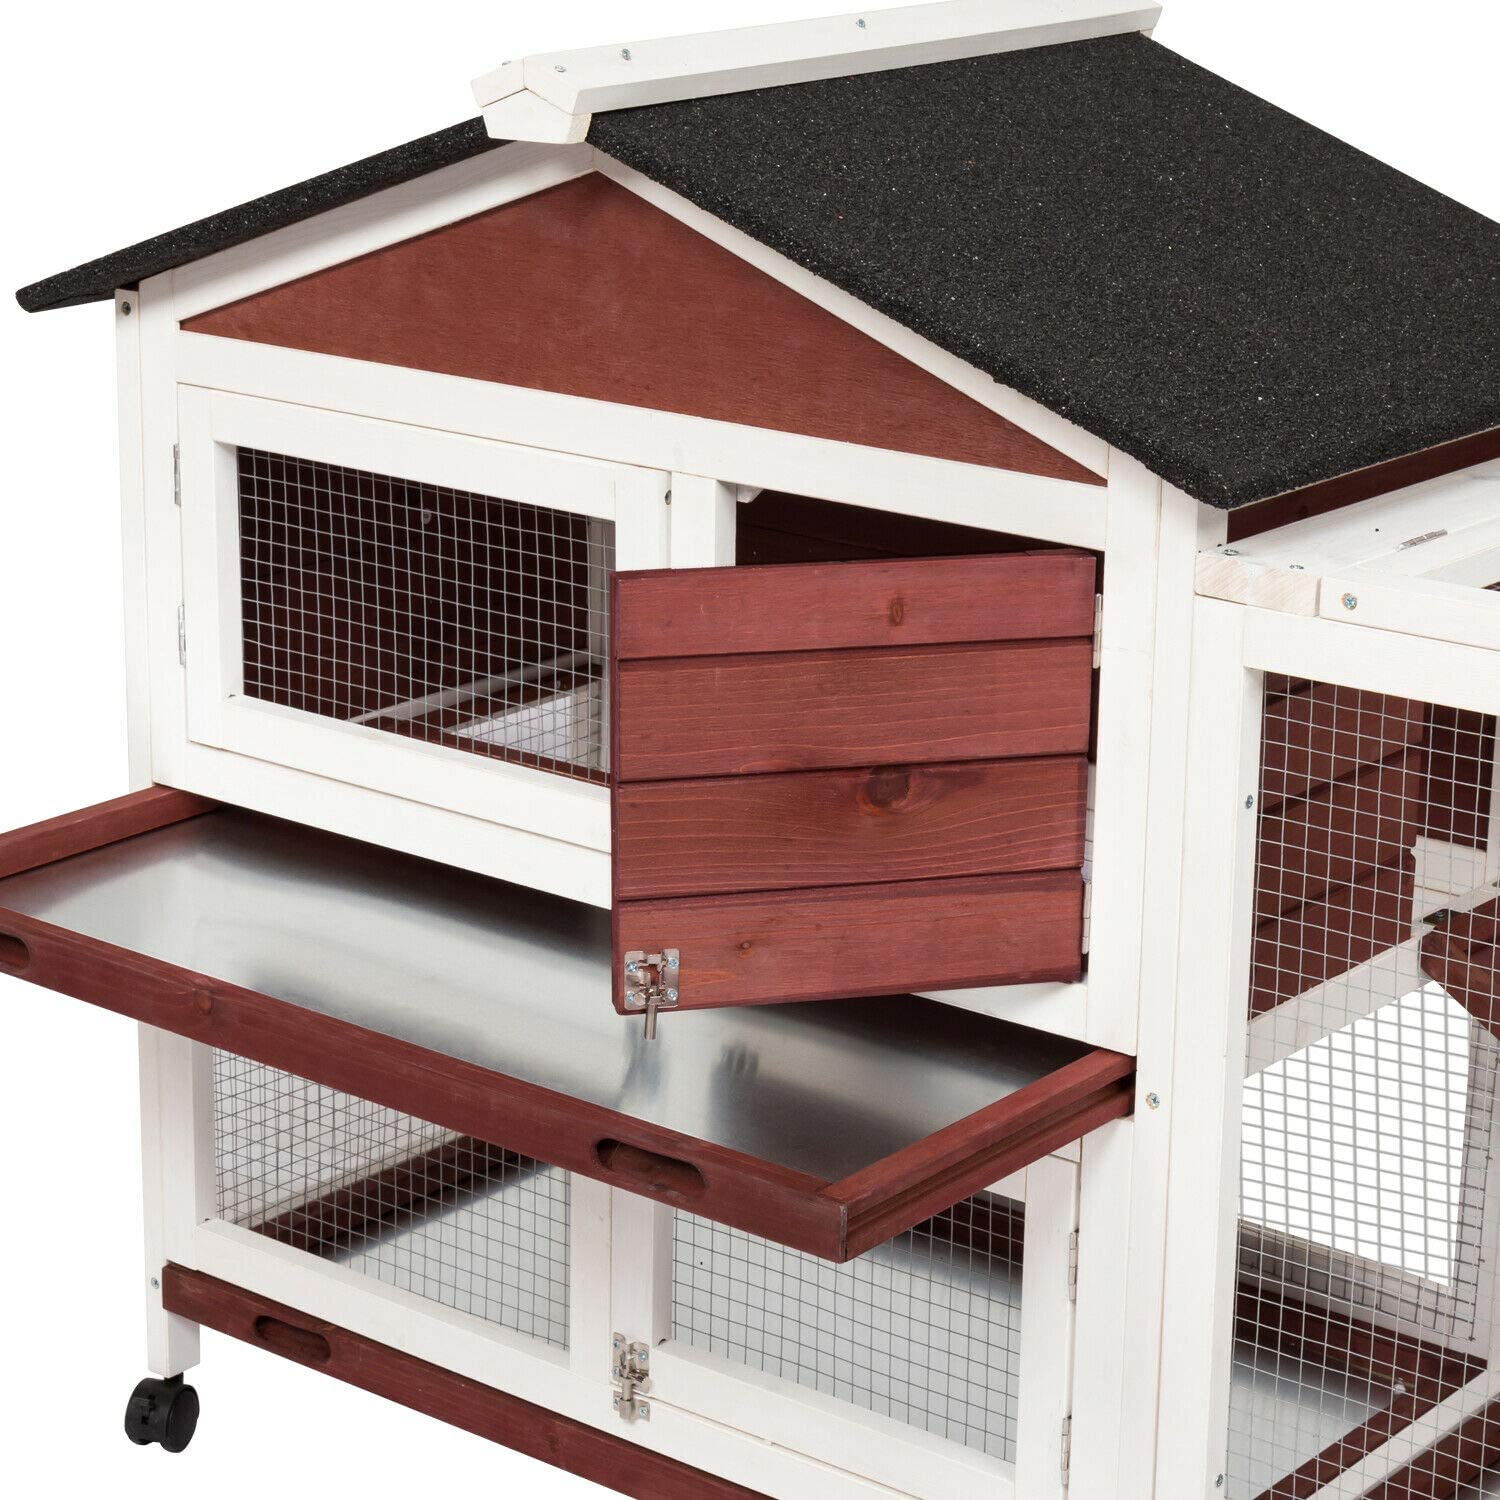 15+ Kintness Large Wooden Rabbit Hutch Indoor and Outdoor Bunny cage on Wheels  Guinea Pig Coop PET House for Small with Ramp and Cleaning Tray Image